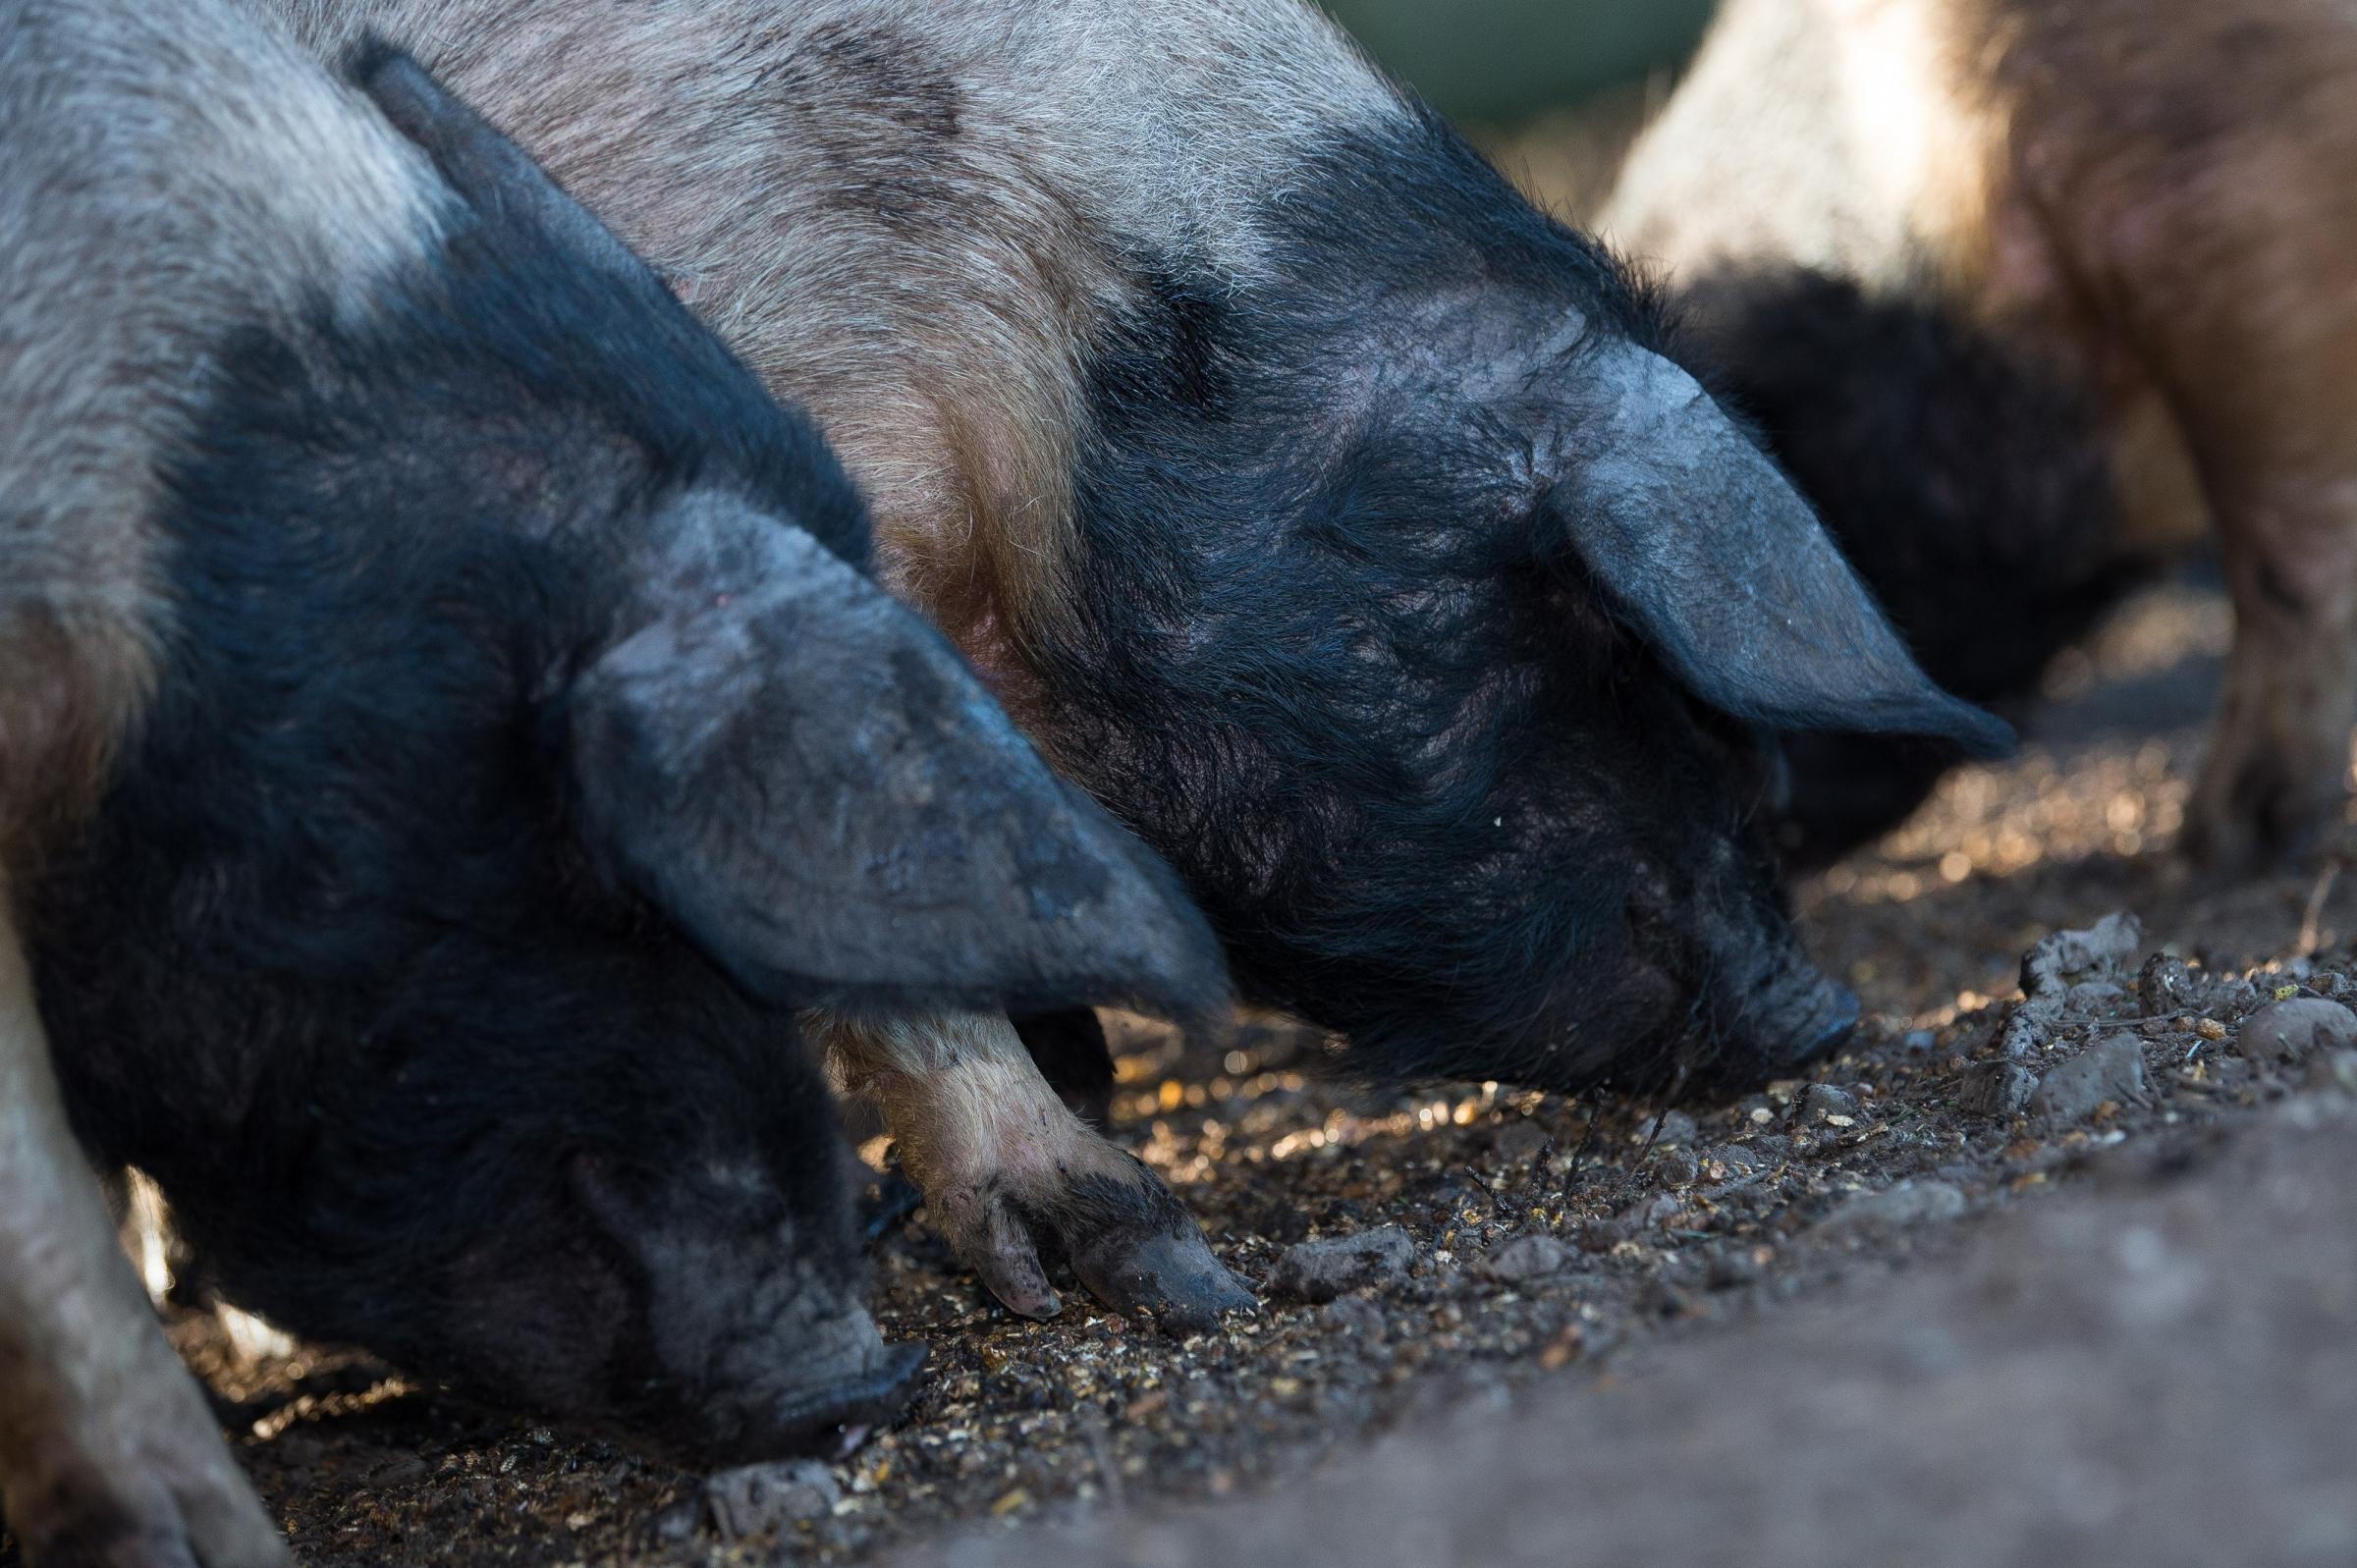 PIGS' FATE: Council and businessman told to discuss immediate prosepects for seized pigs to ensure they realise maximum value